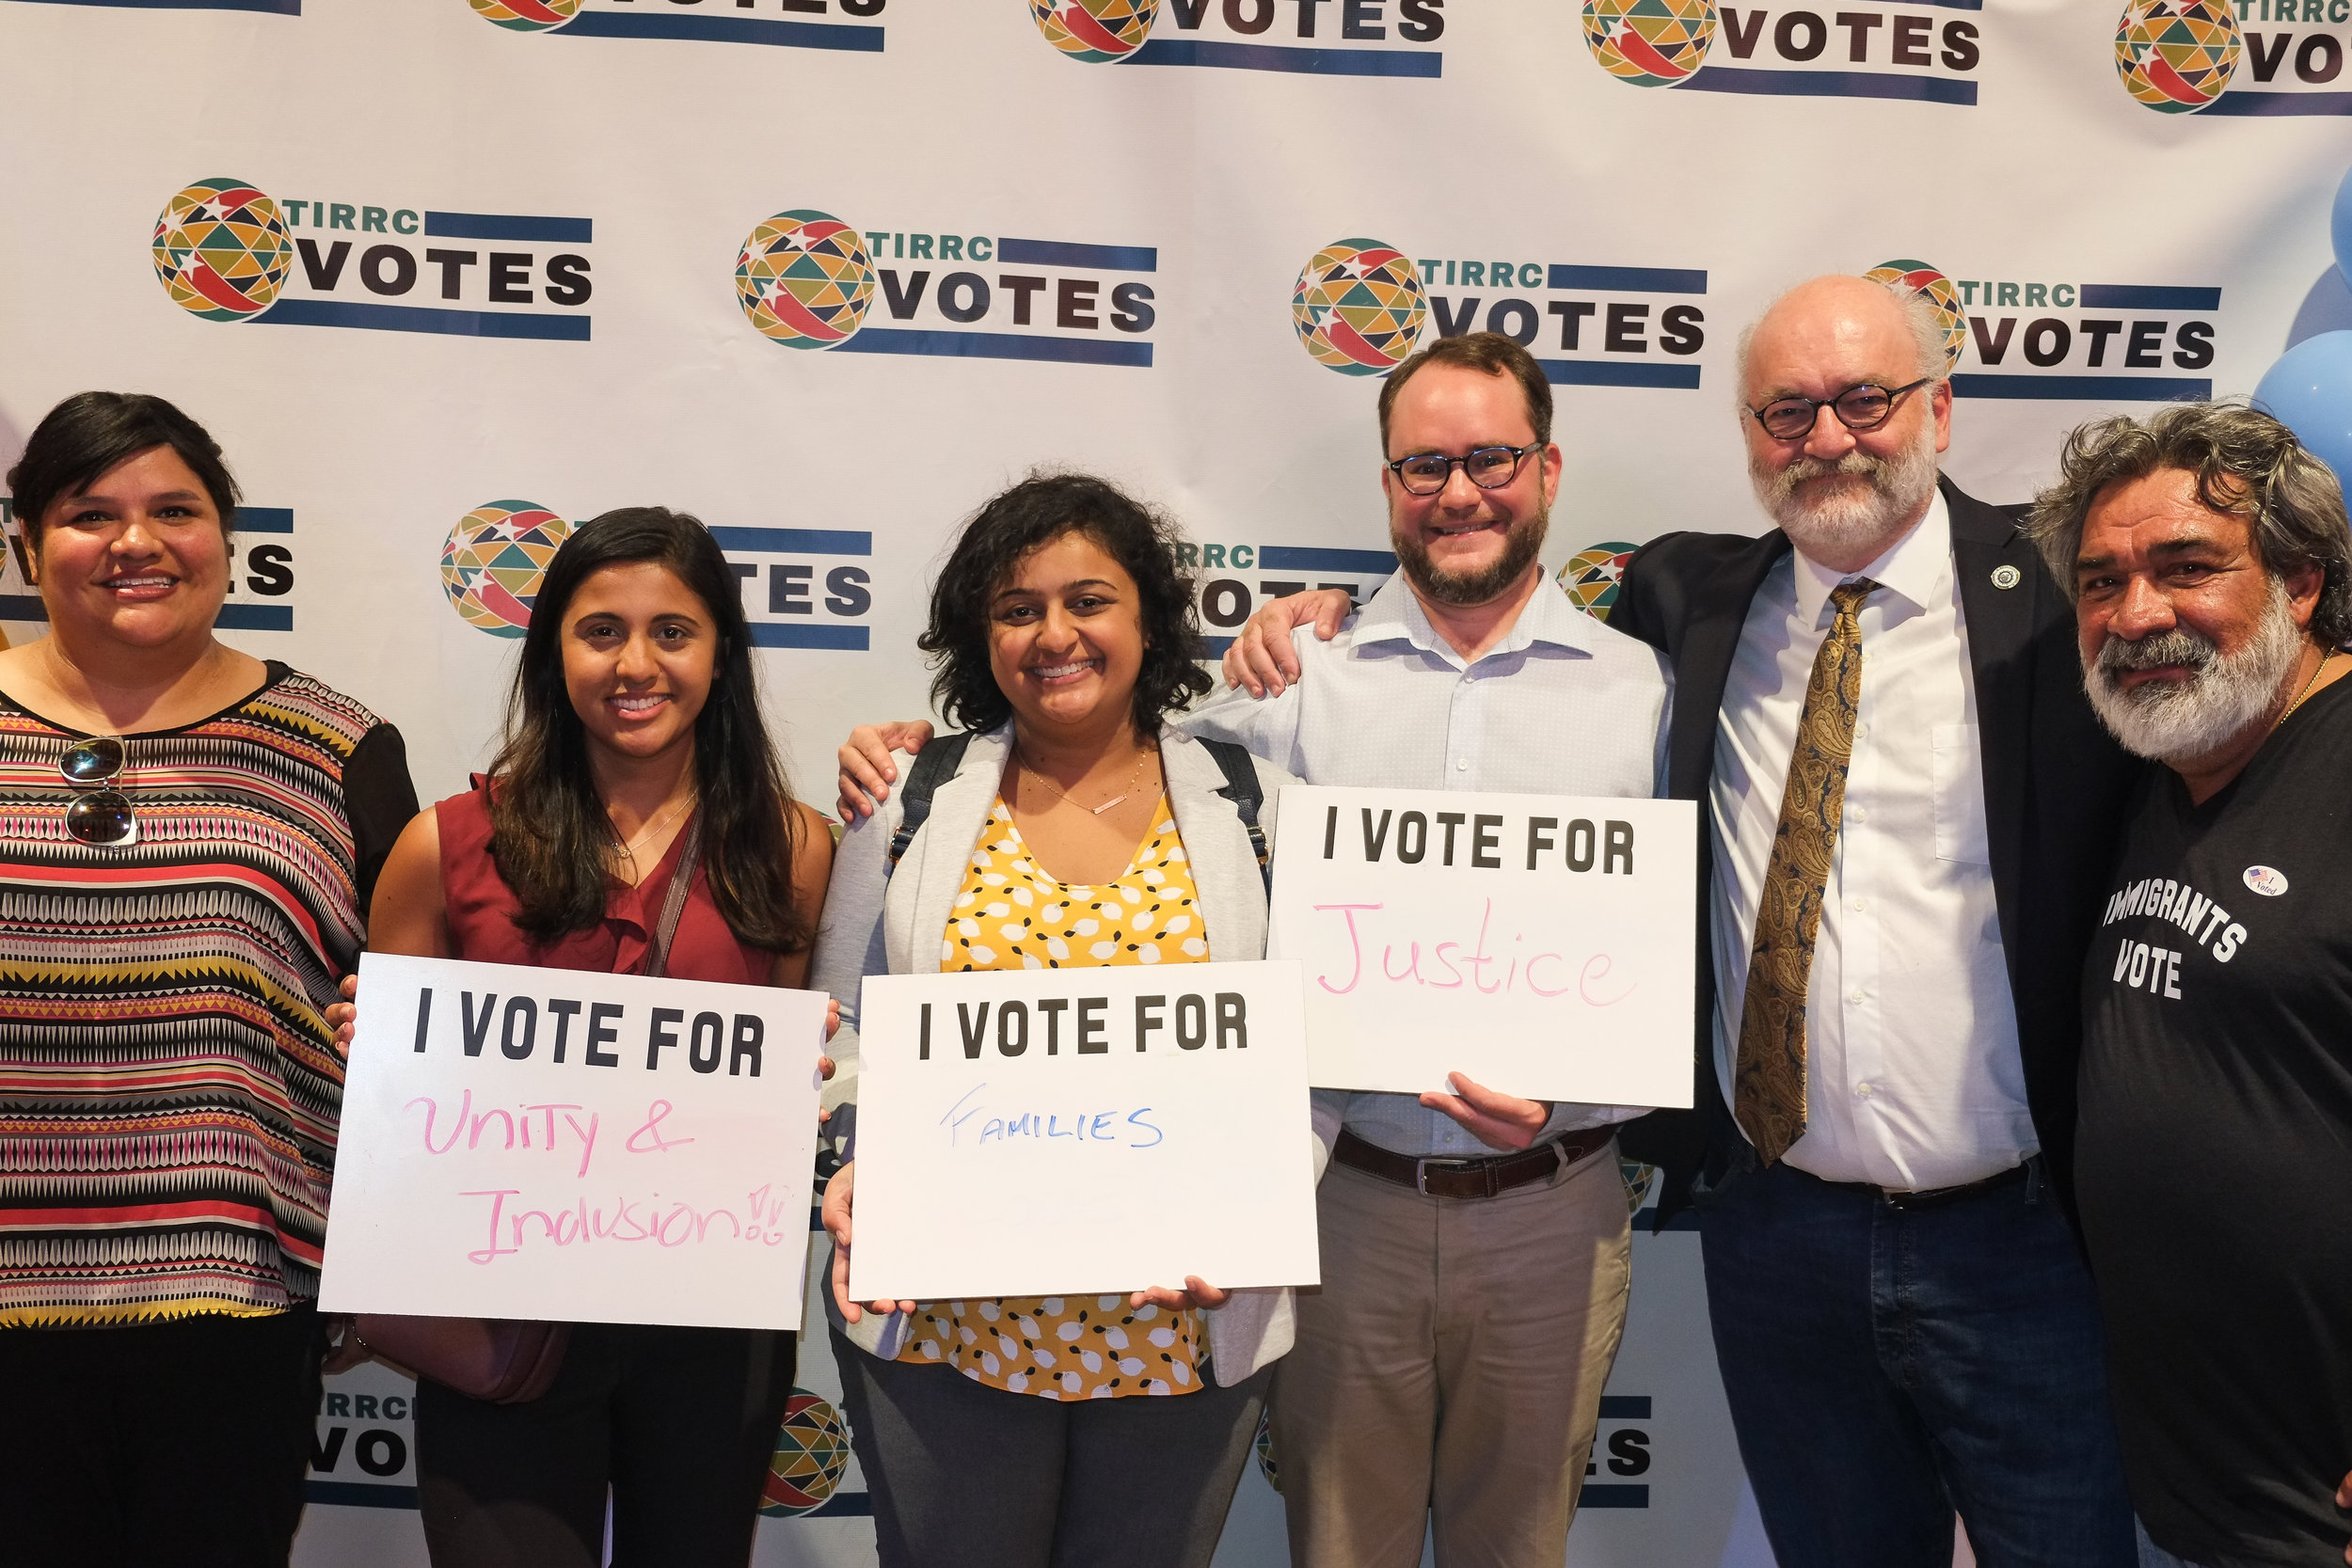 TIRRCVotes-PhotoBooth-34.jpg